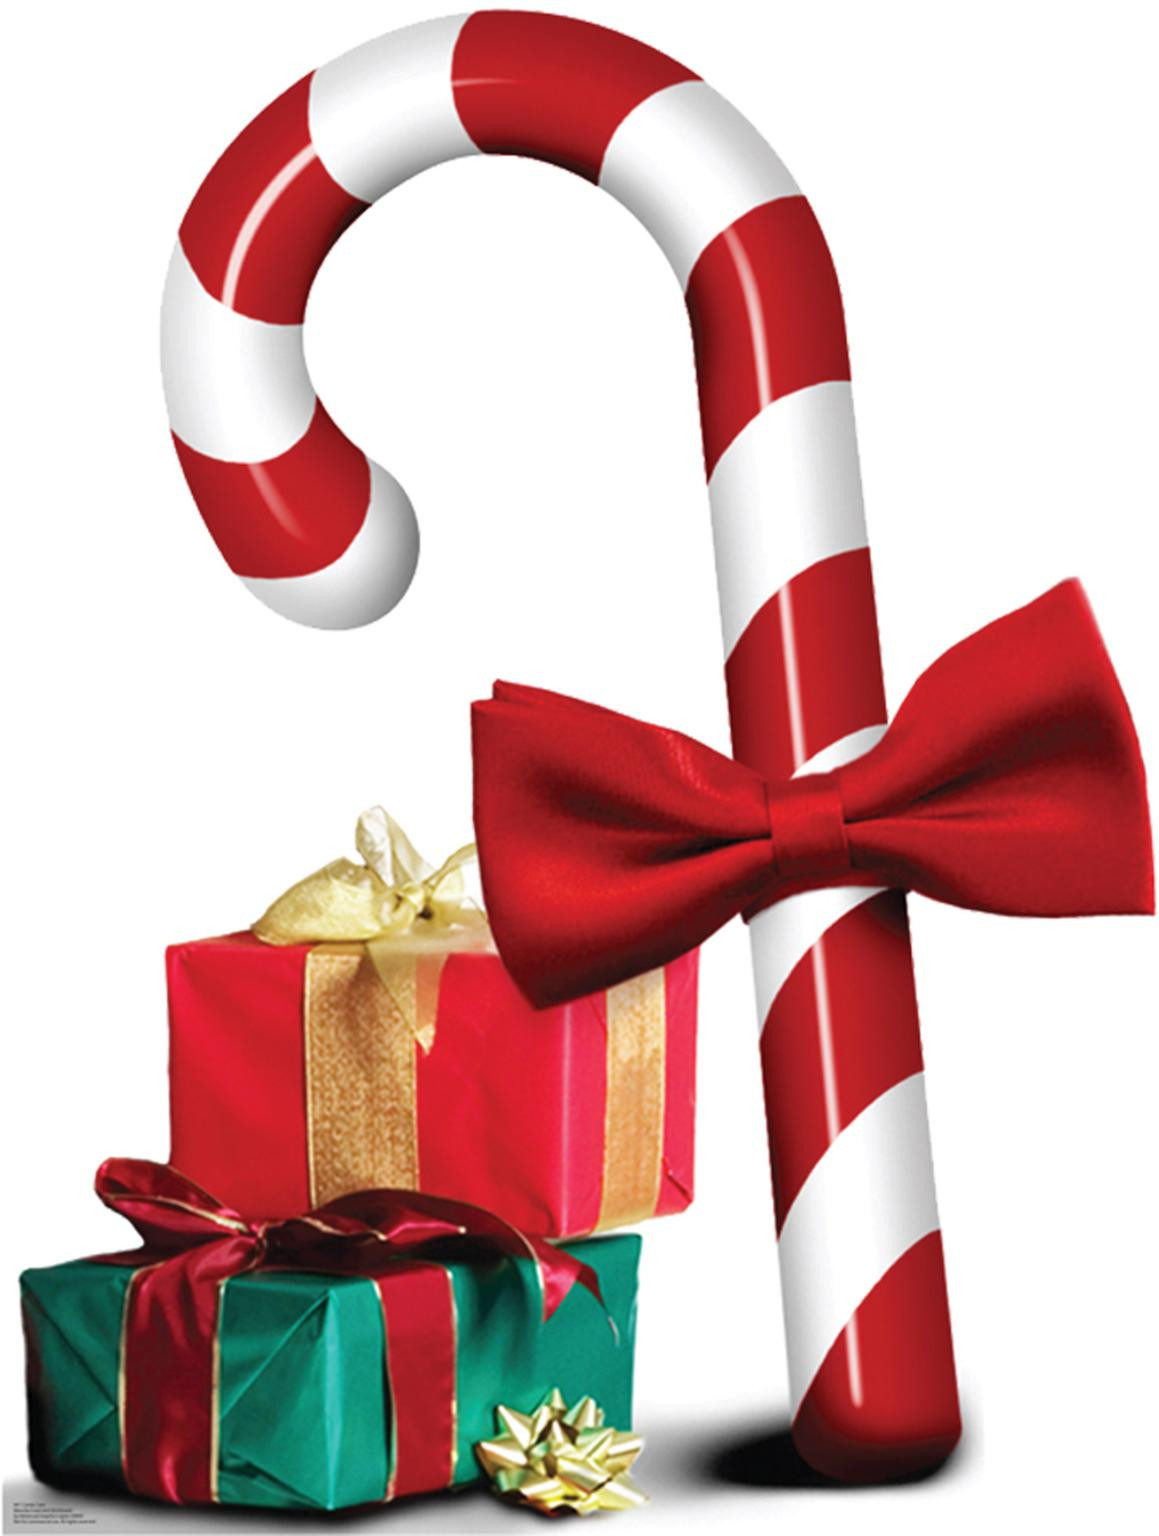 Christmas Candy Cane Images  Candy Cane Christmas 941